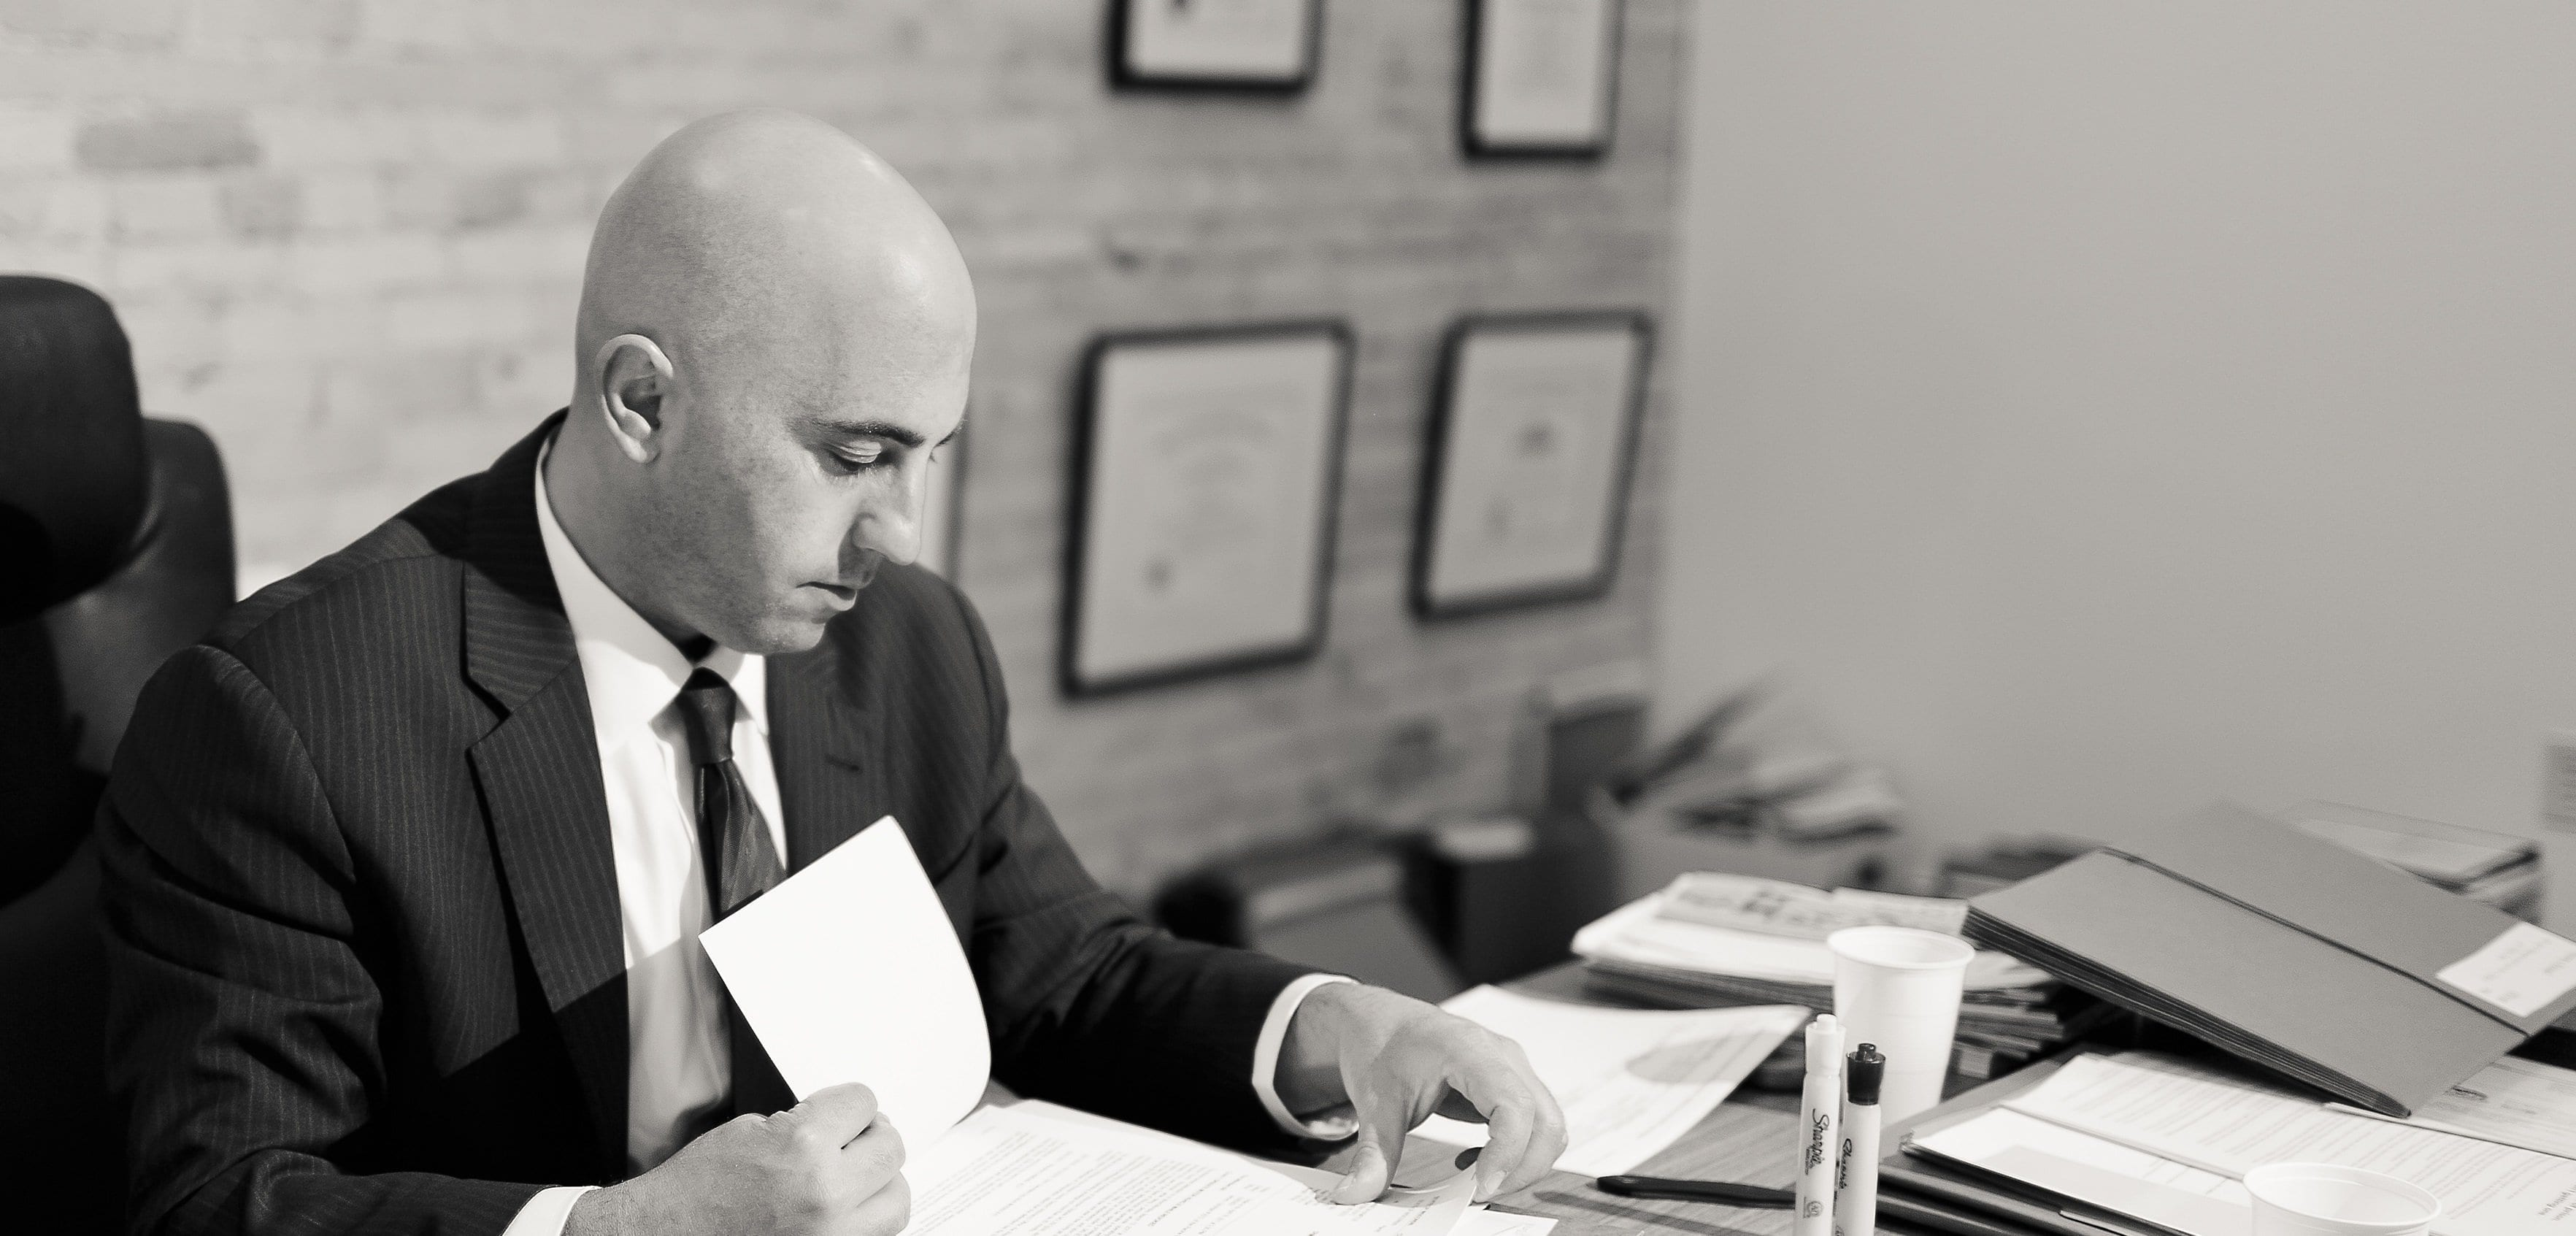 Attorney Michael Levine at work at a desk